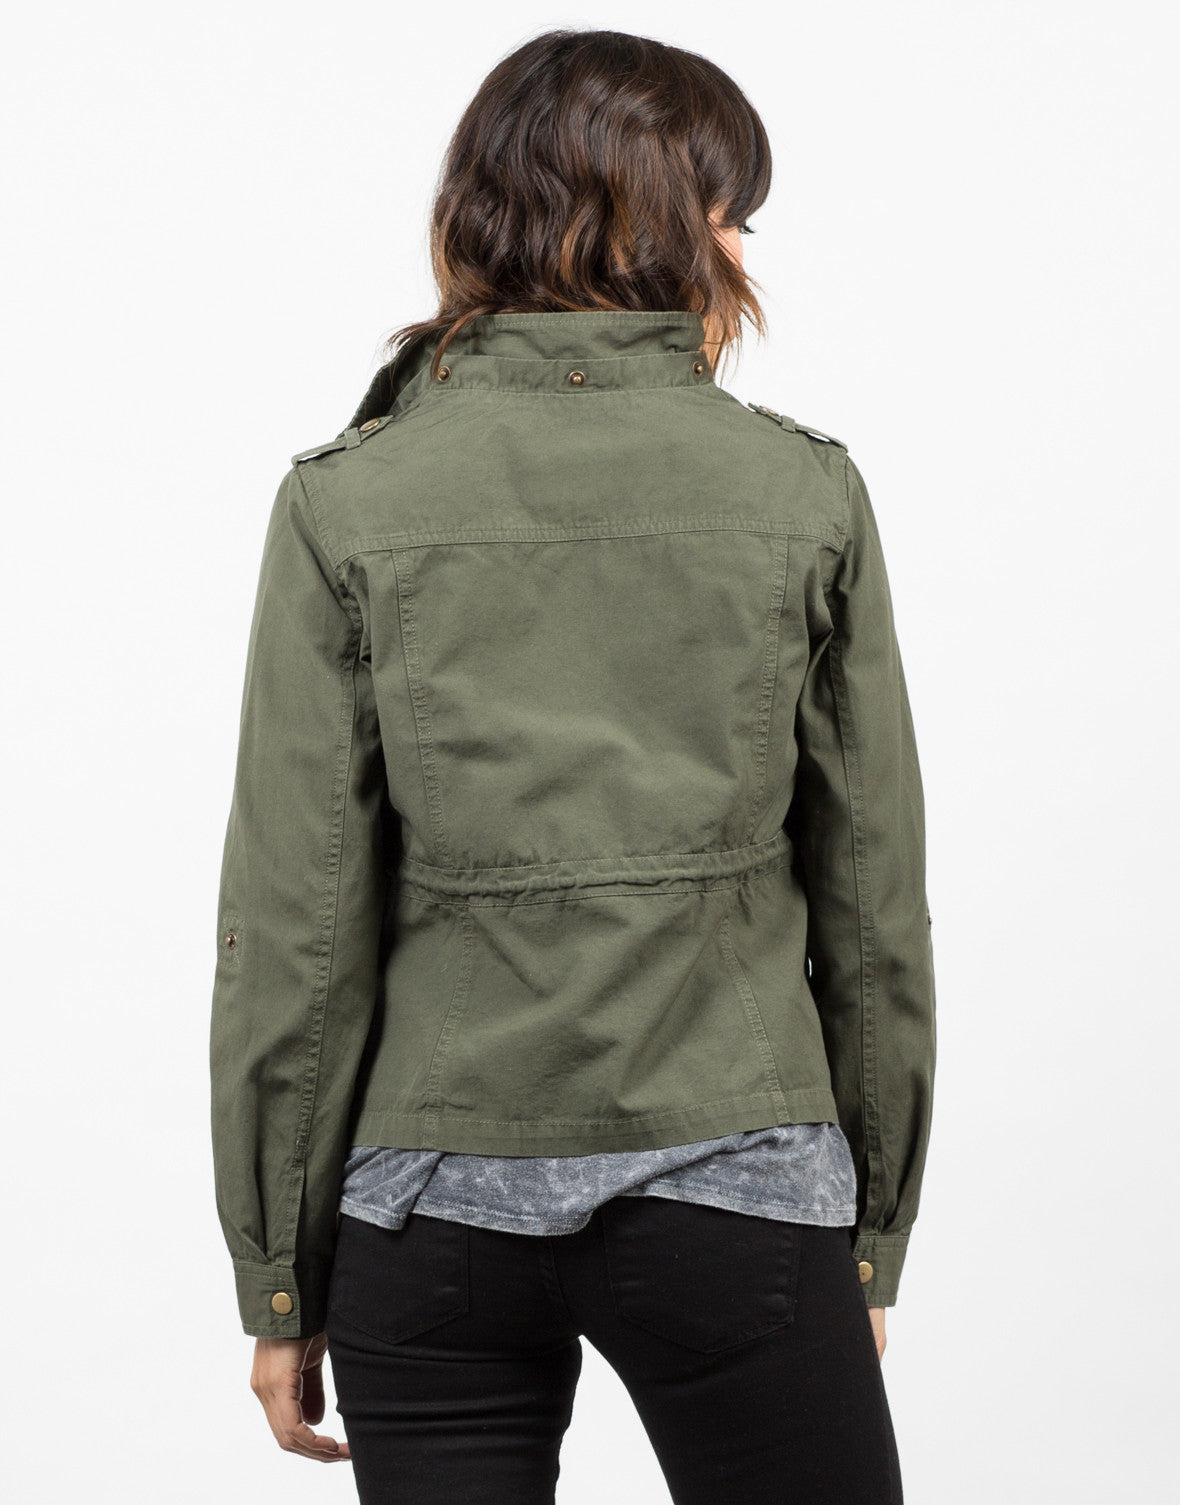 Back View of Drawstring Field Jacket